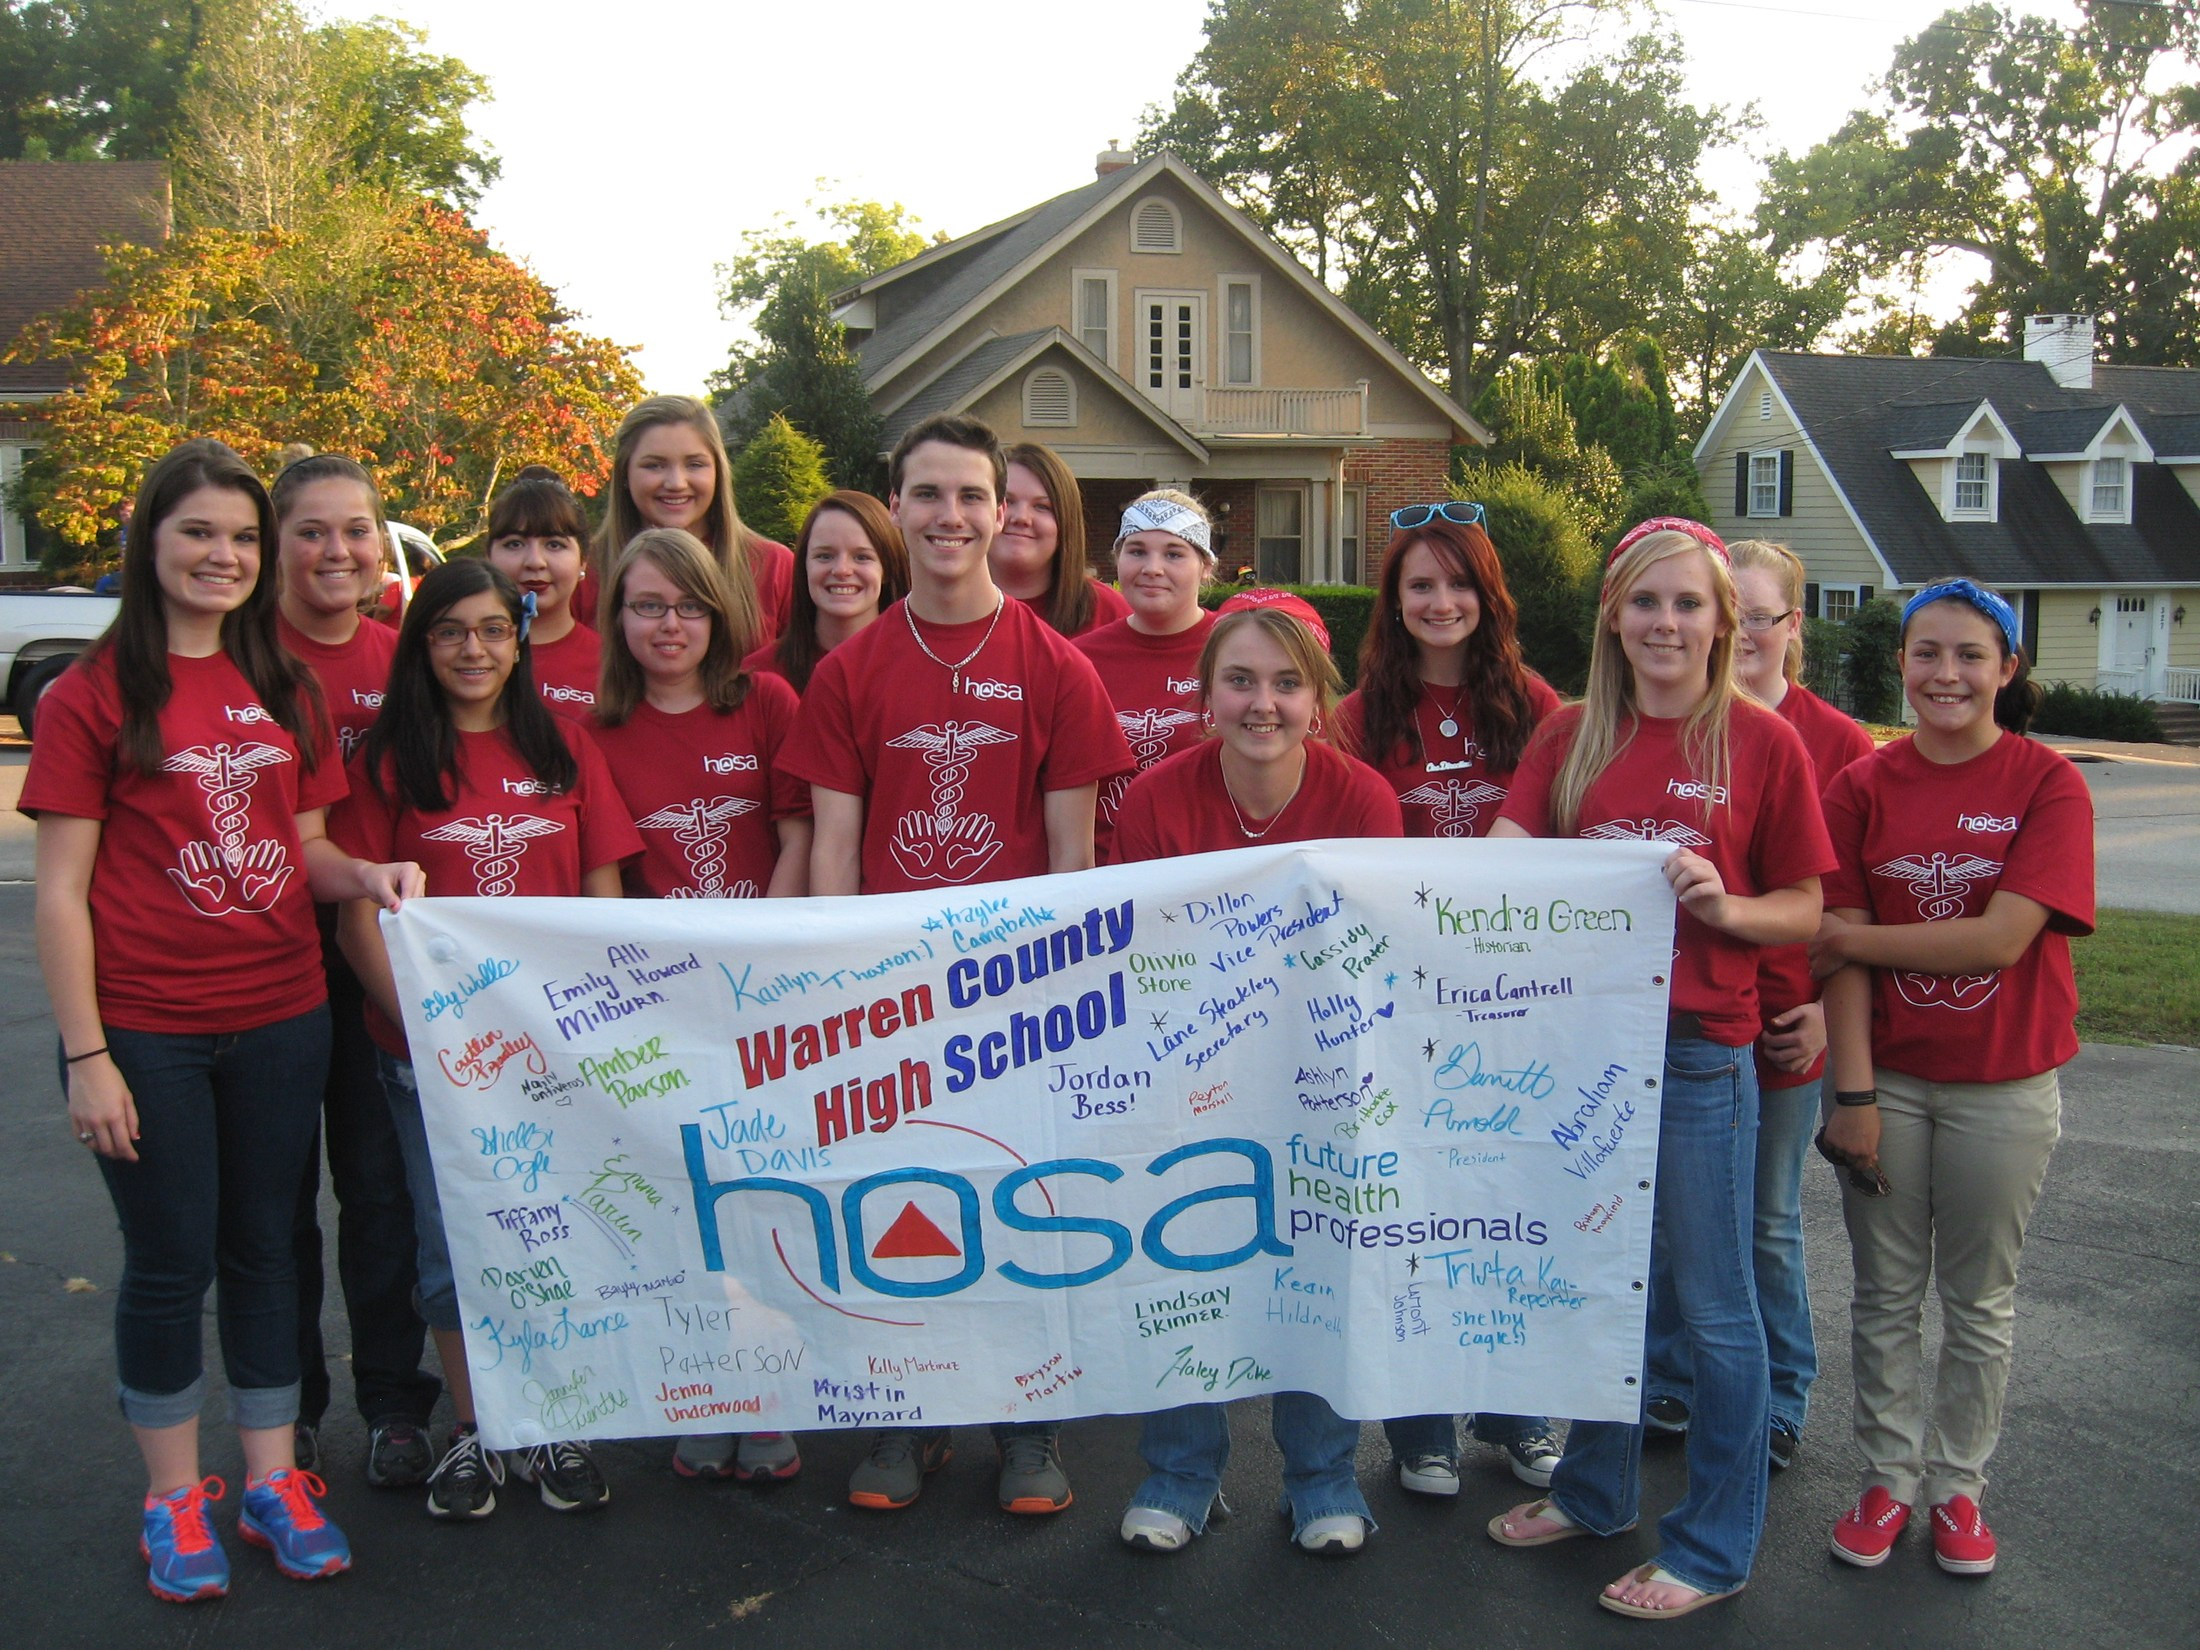 Some of our HOSA members marching in the Home Coming Parade